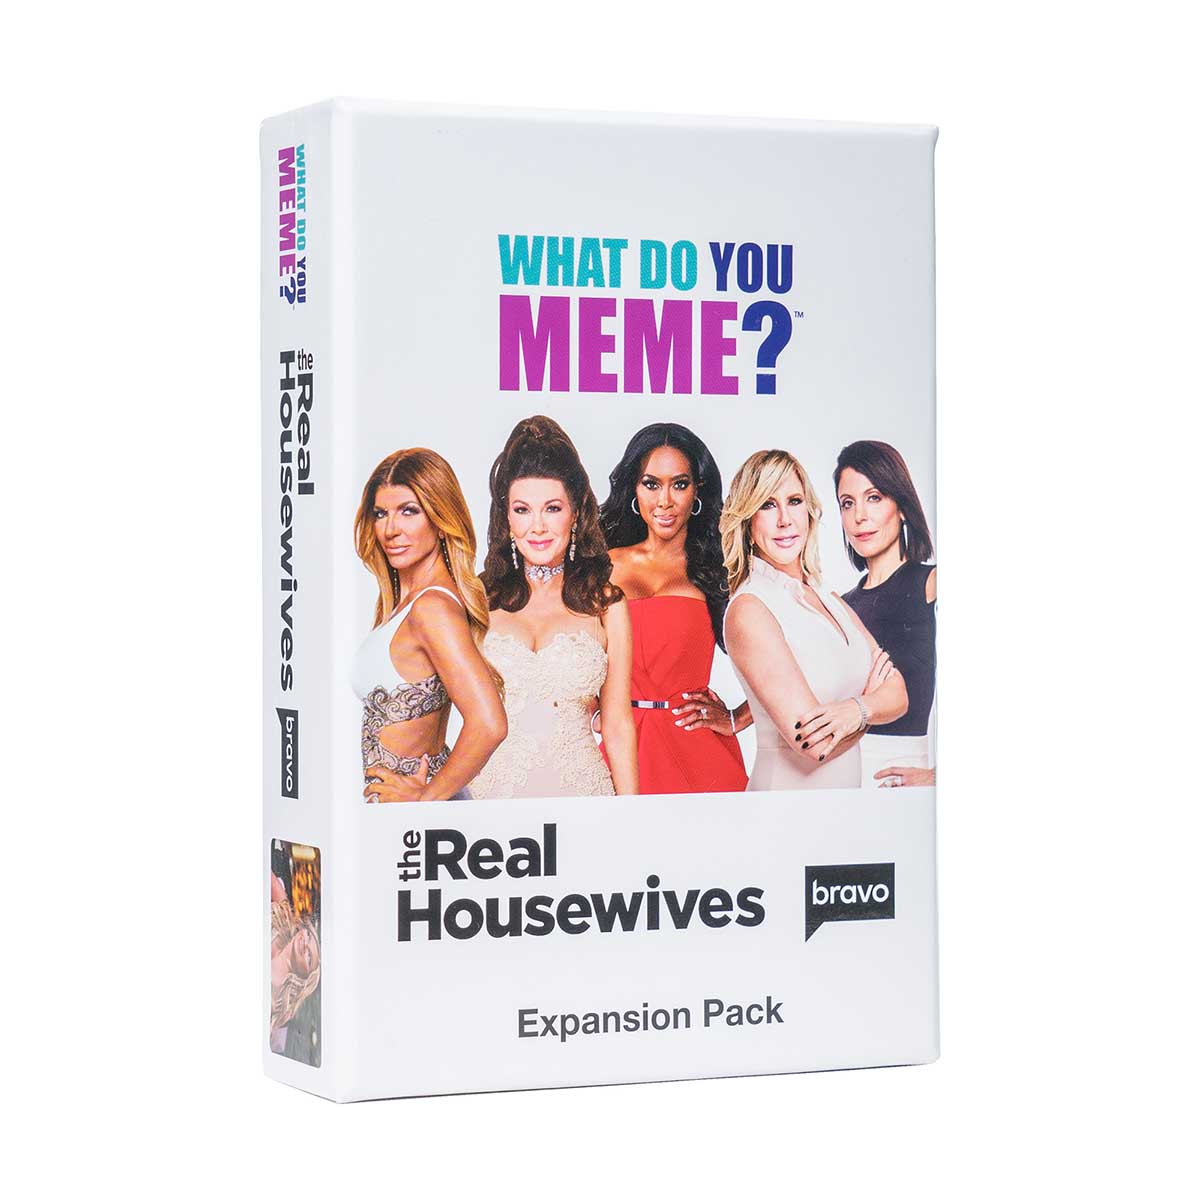 Real Housewives Expansion Pack